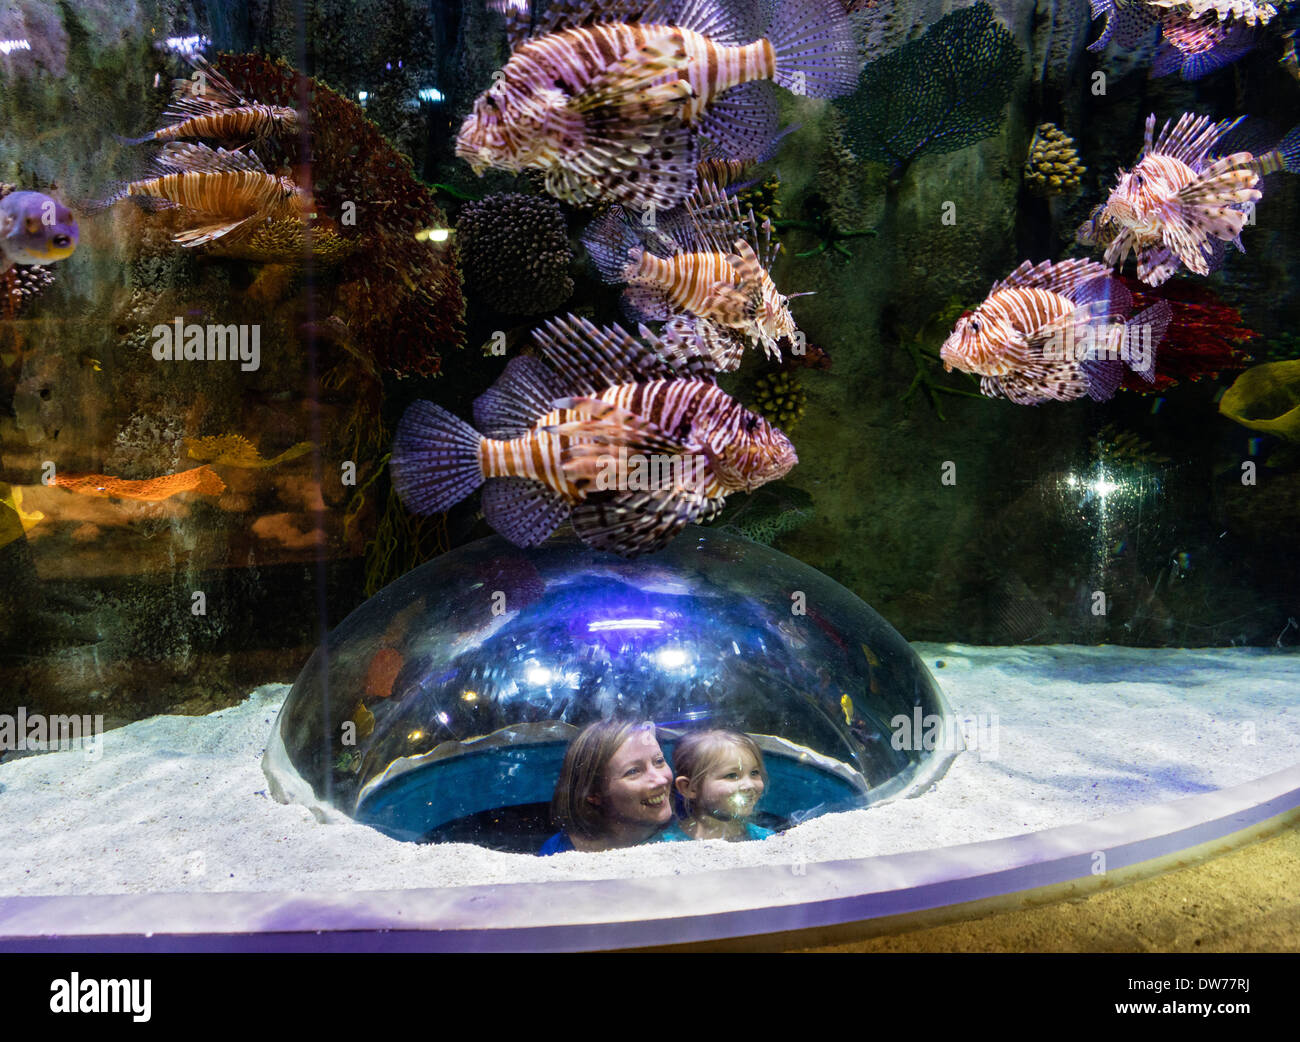 Freshwater Aquarium Fish In Dubai - Tourists looking at lion fish inside aquarium tank at underwater zoo aquarium at dubai mall in